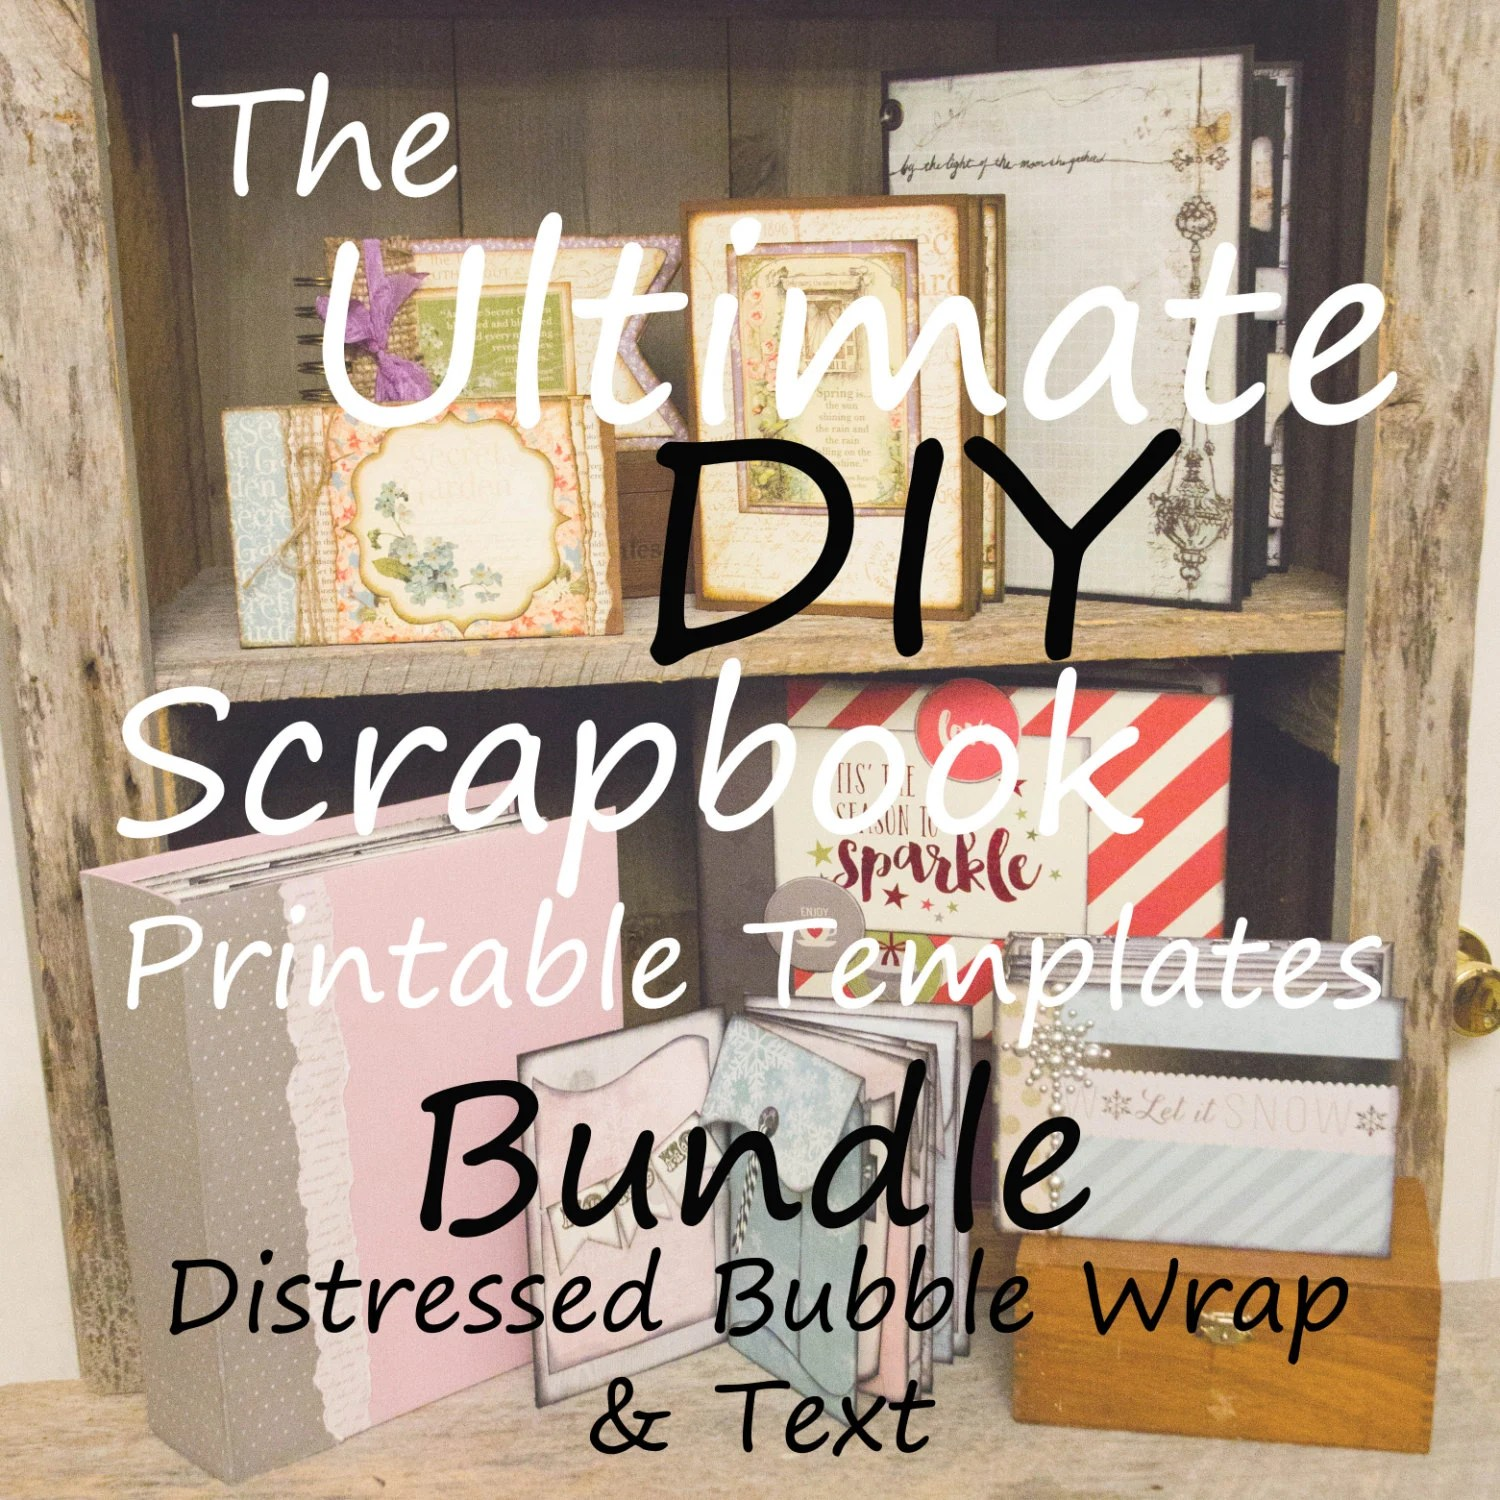 The Ultimate DIY Scrapbook Printable Templates Bubble Wrap Etsy